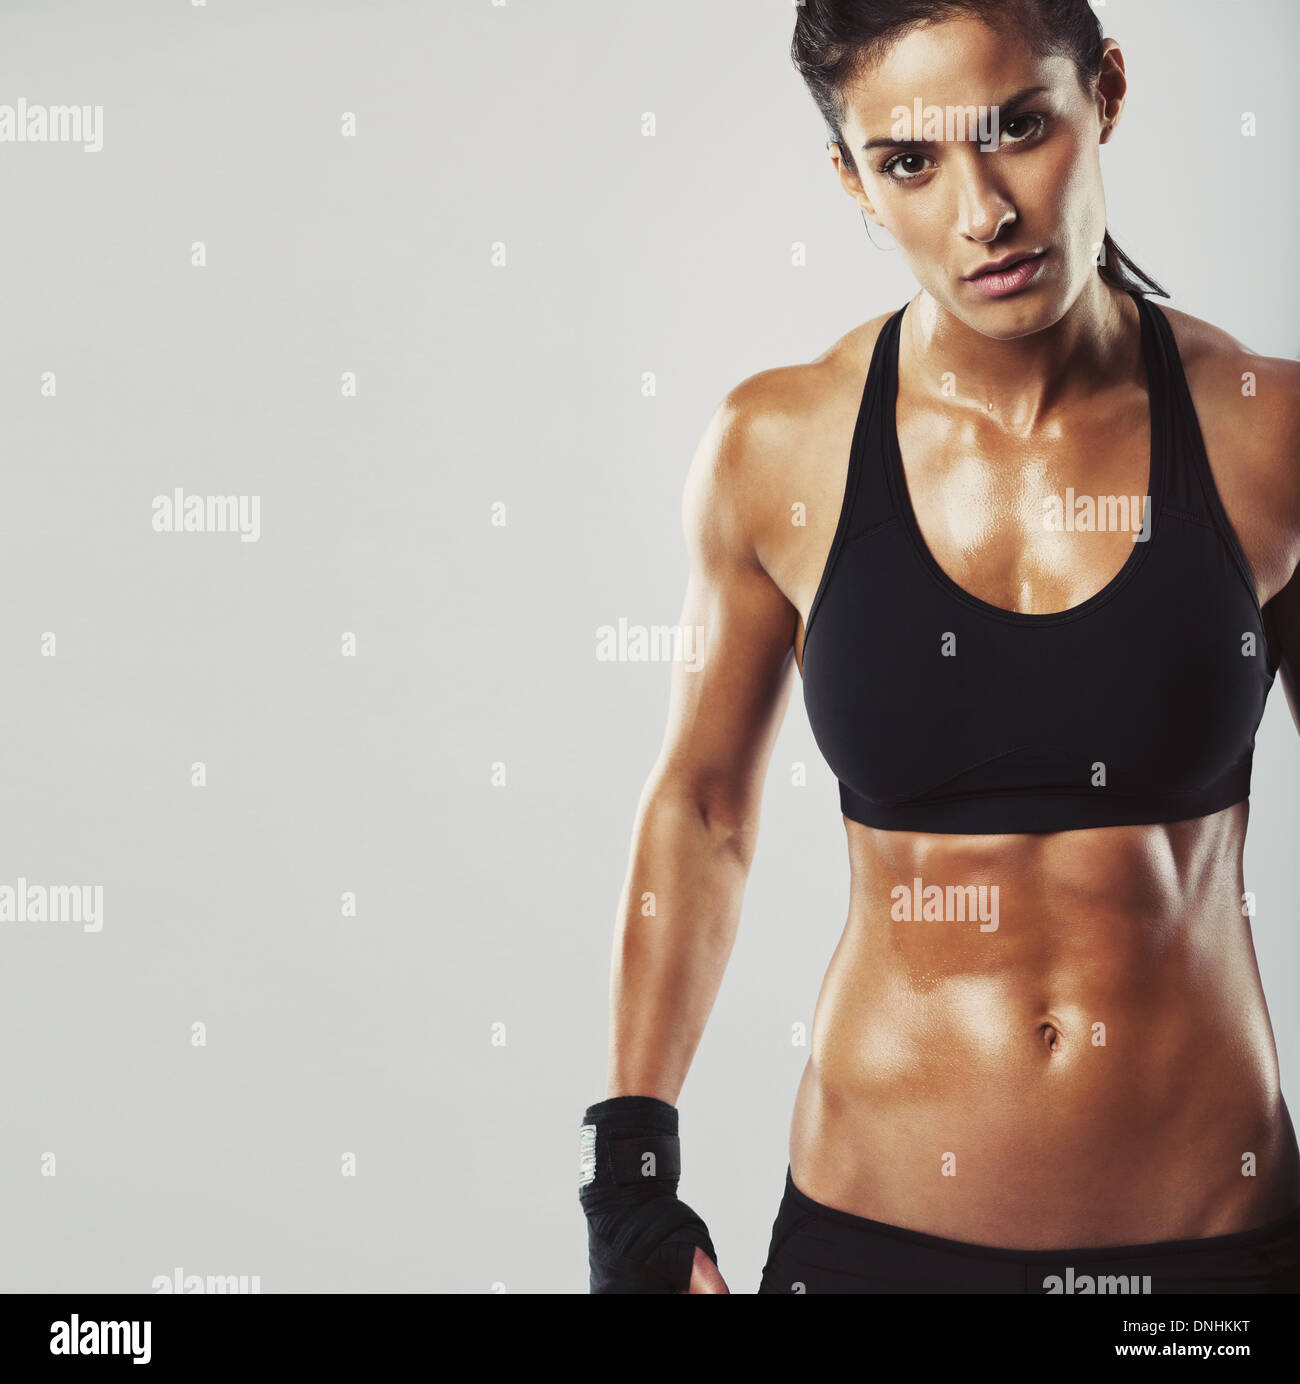 ba178d07040cb Picture of a fitness model on grey background. Young woman bodybuilder with  muscular body looking